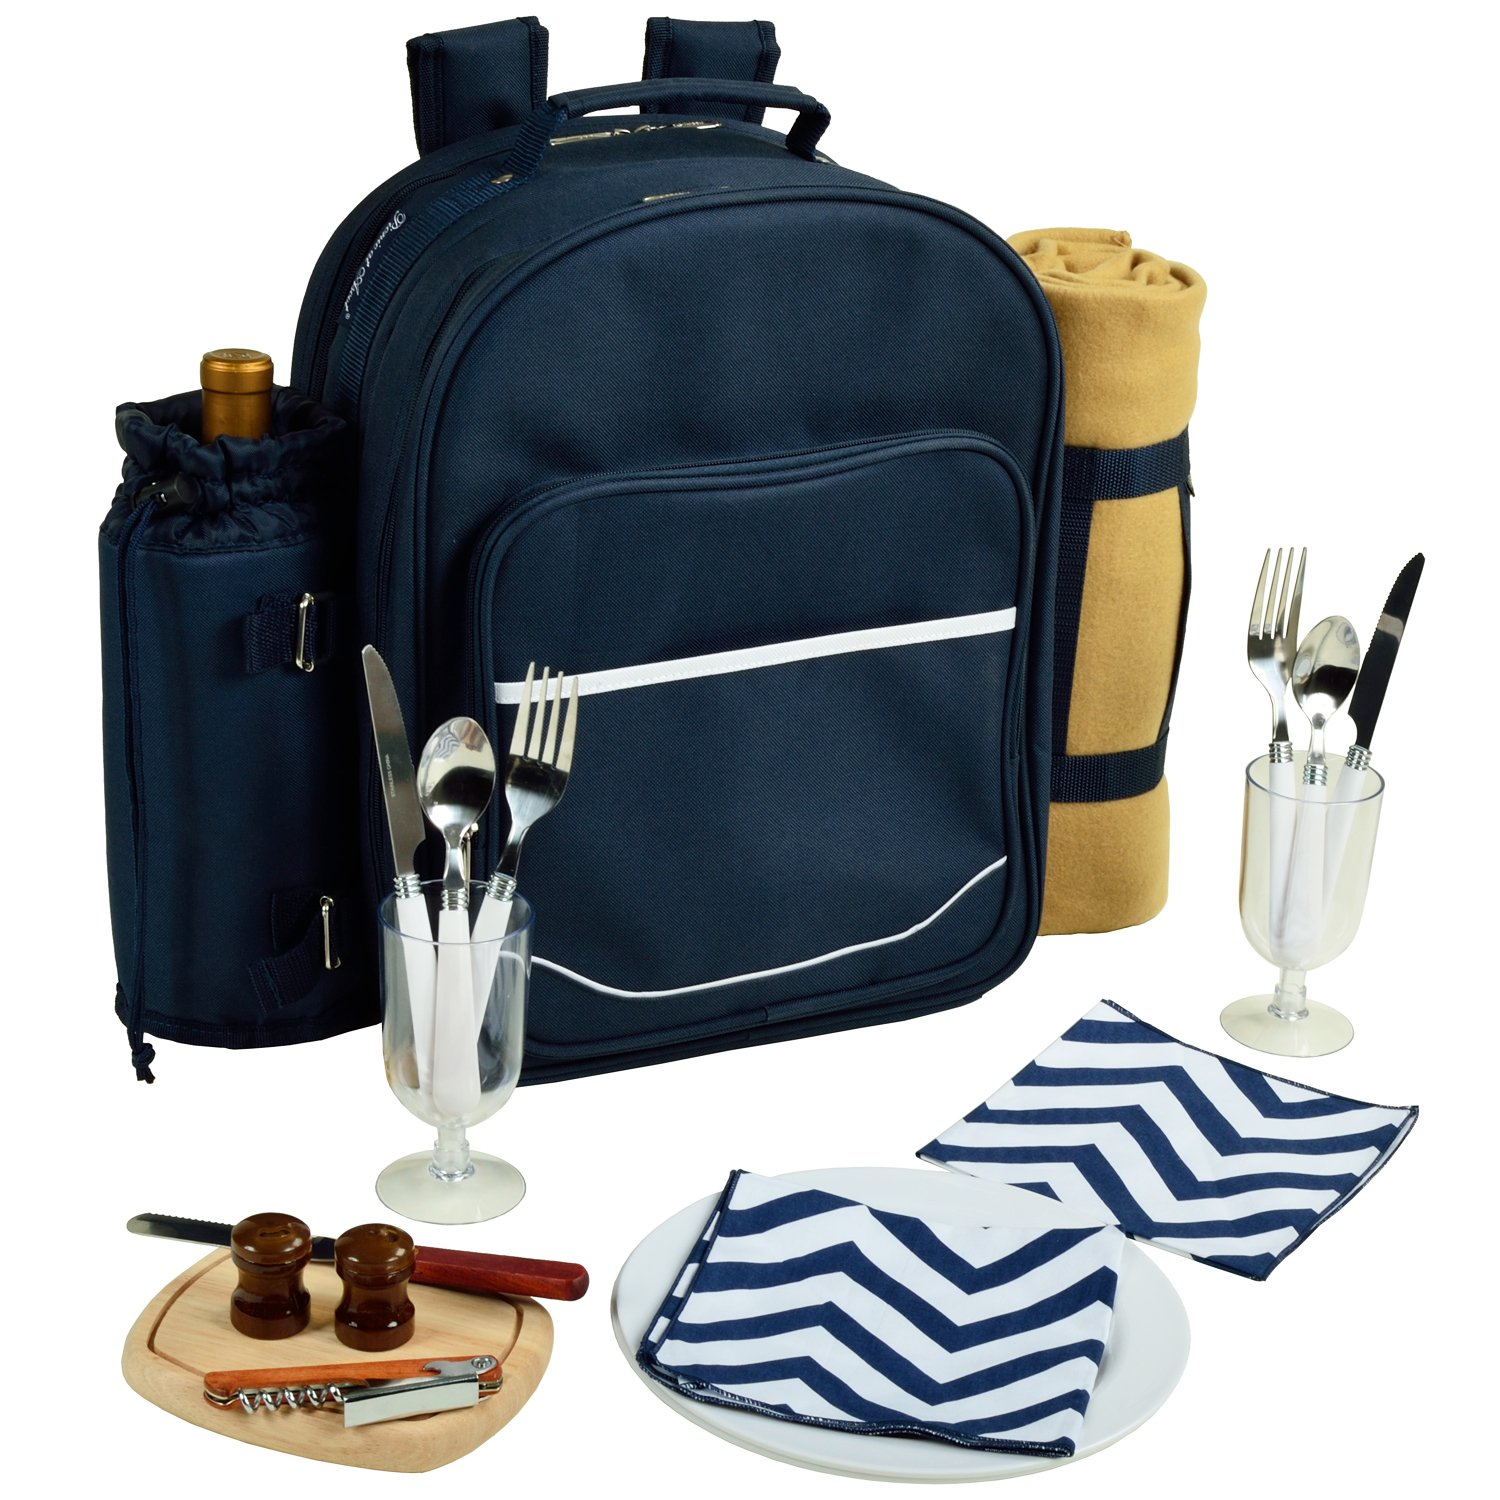 Picnic at Ascot - Deluxe Equipped 2 Person Picnic Backpack with Cooler, Insulated Wine Holder & Blanket - Chevron Blue